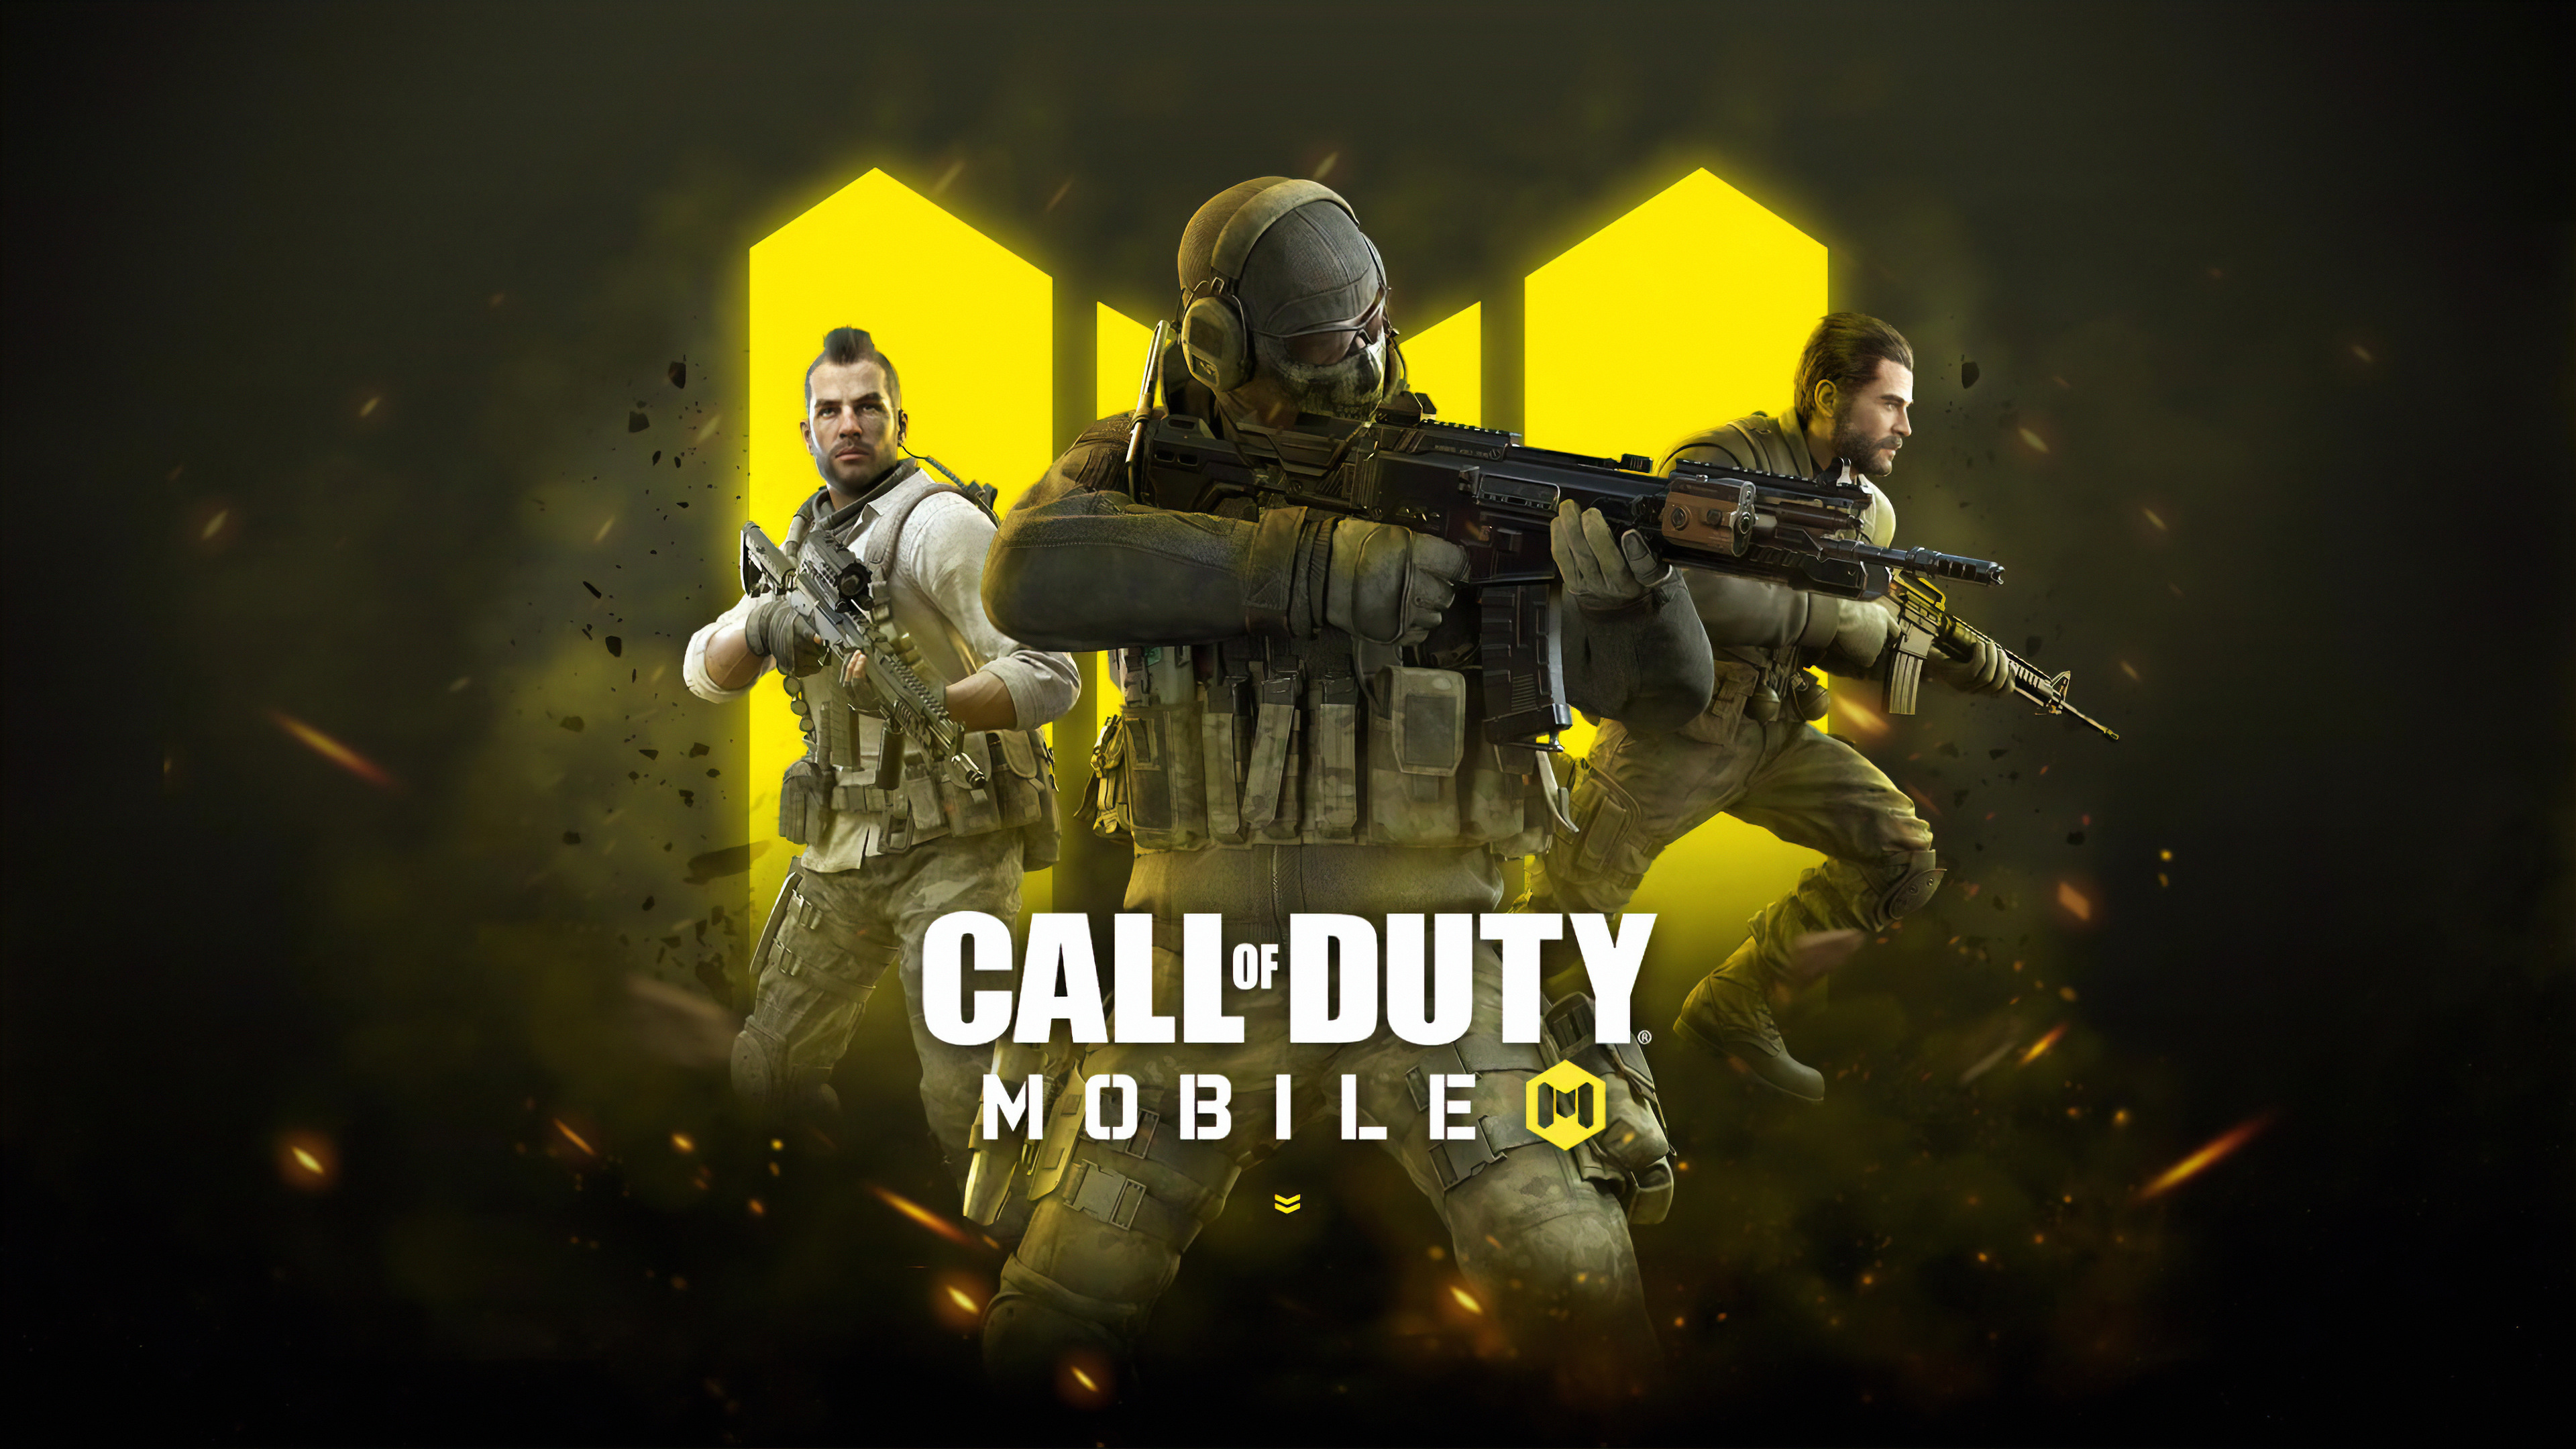 Call Of Duty Mobile Poster Wallpaper 4k Ultra Hd Id 4010